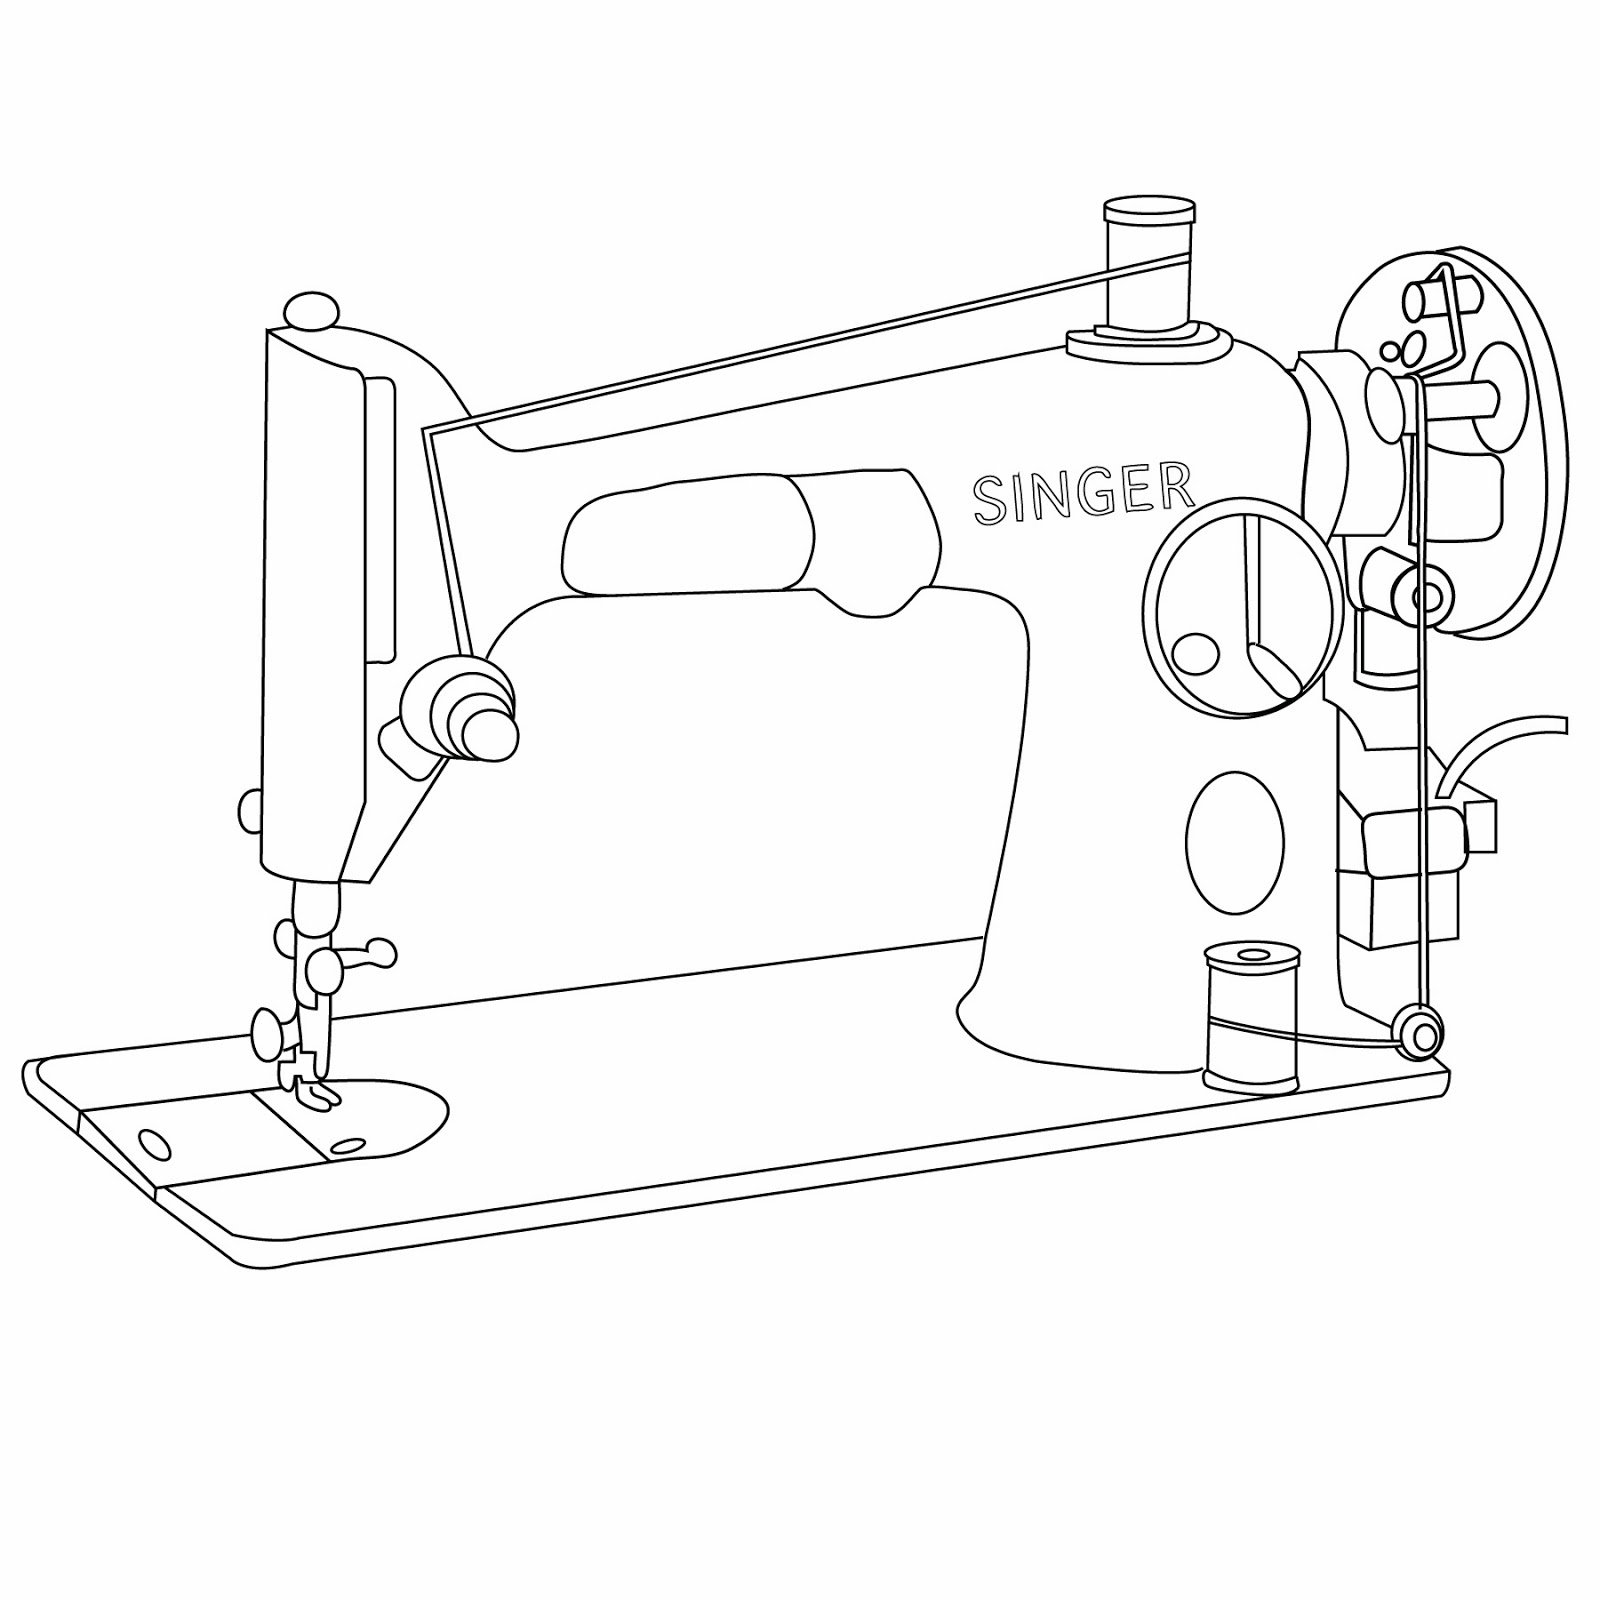 1600x1600 Sewing Machine Drawing Wwwimgarcade Online Image